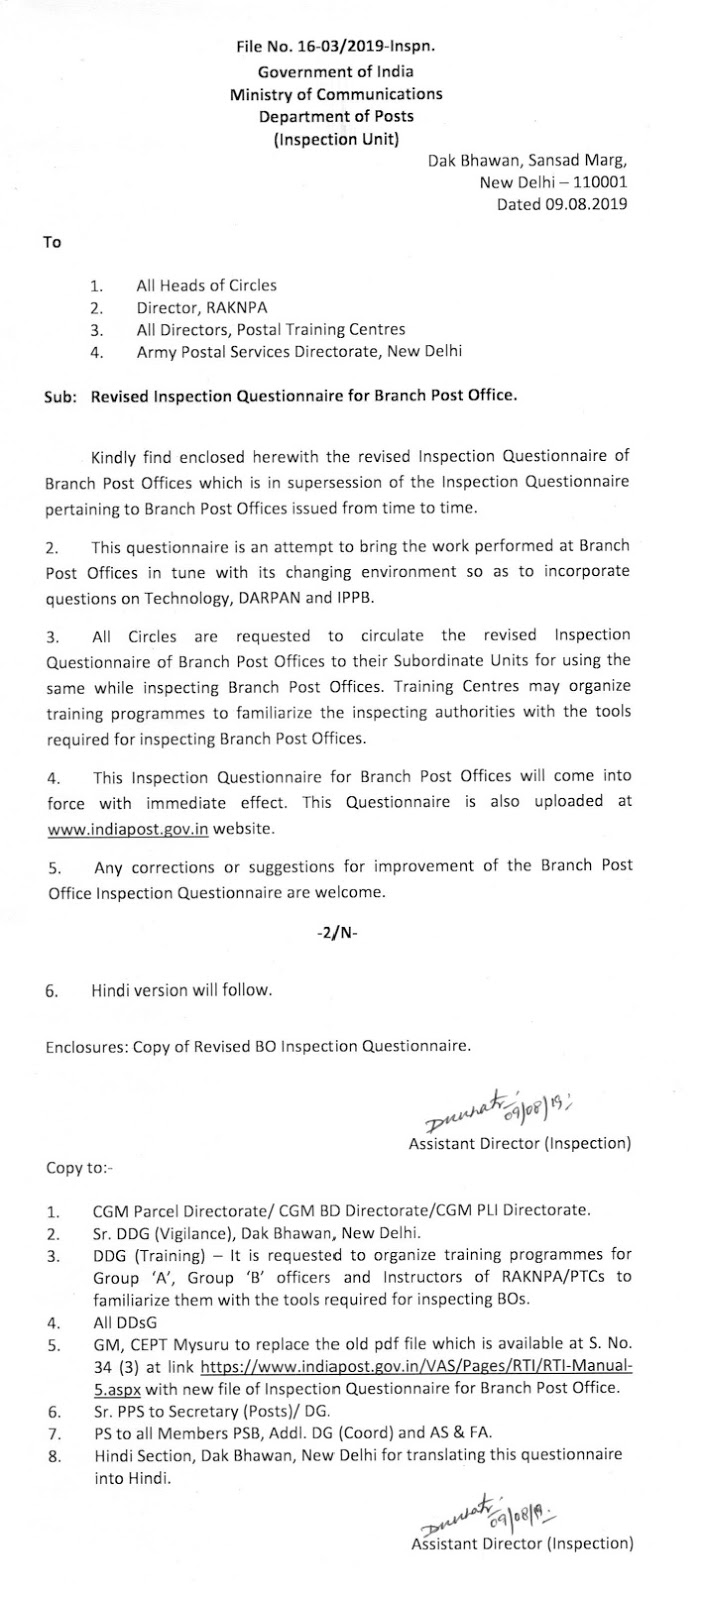 Revised Inspection Questionnaire for Branch Post Office